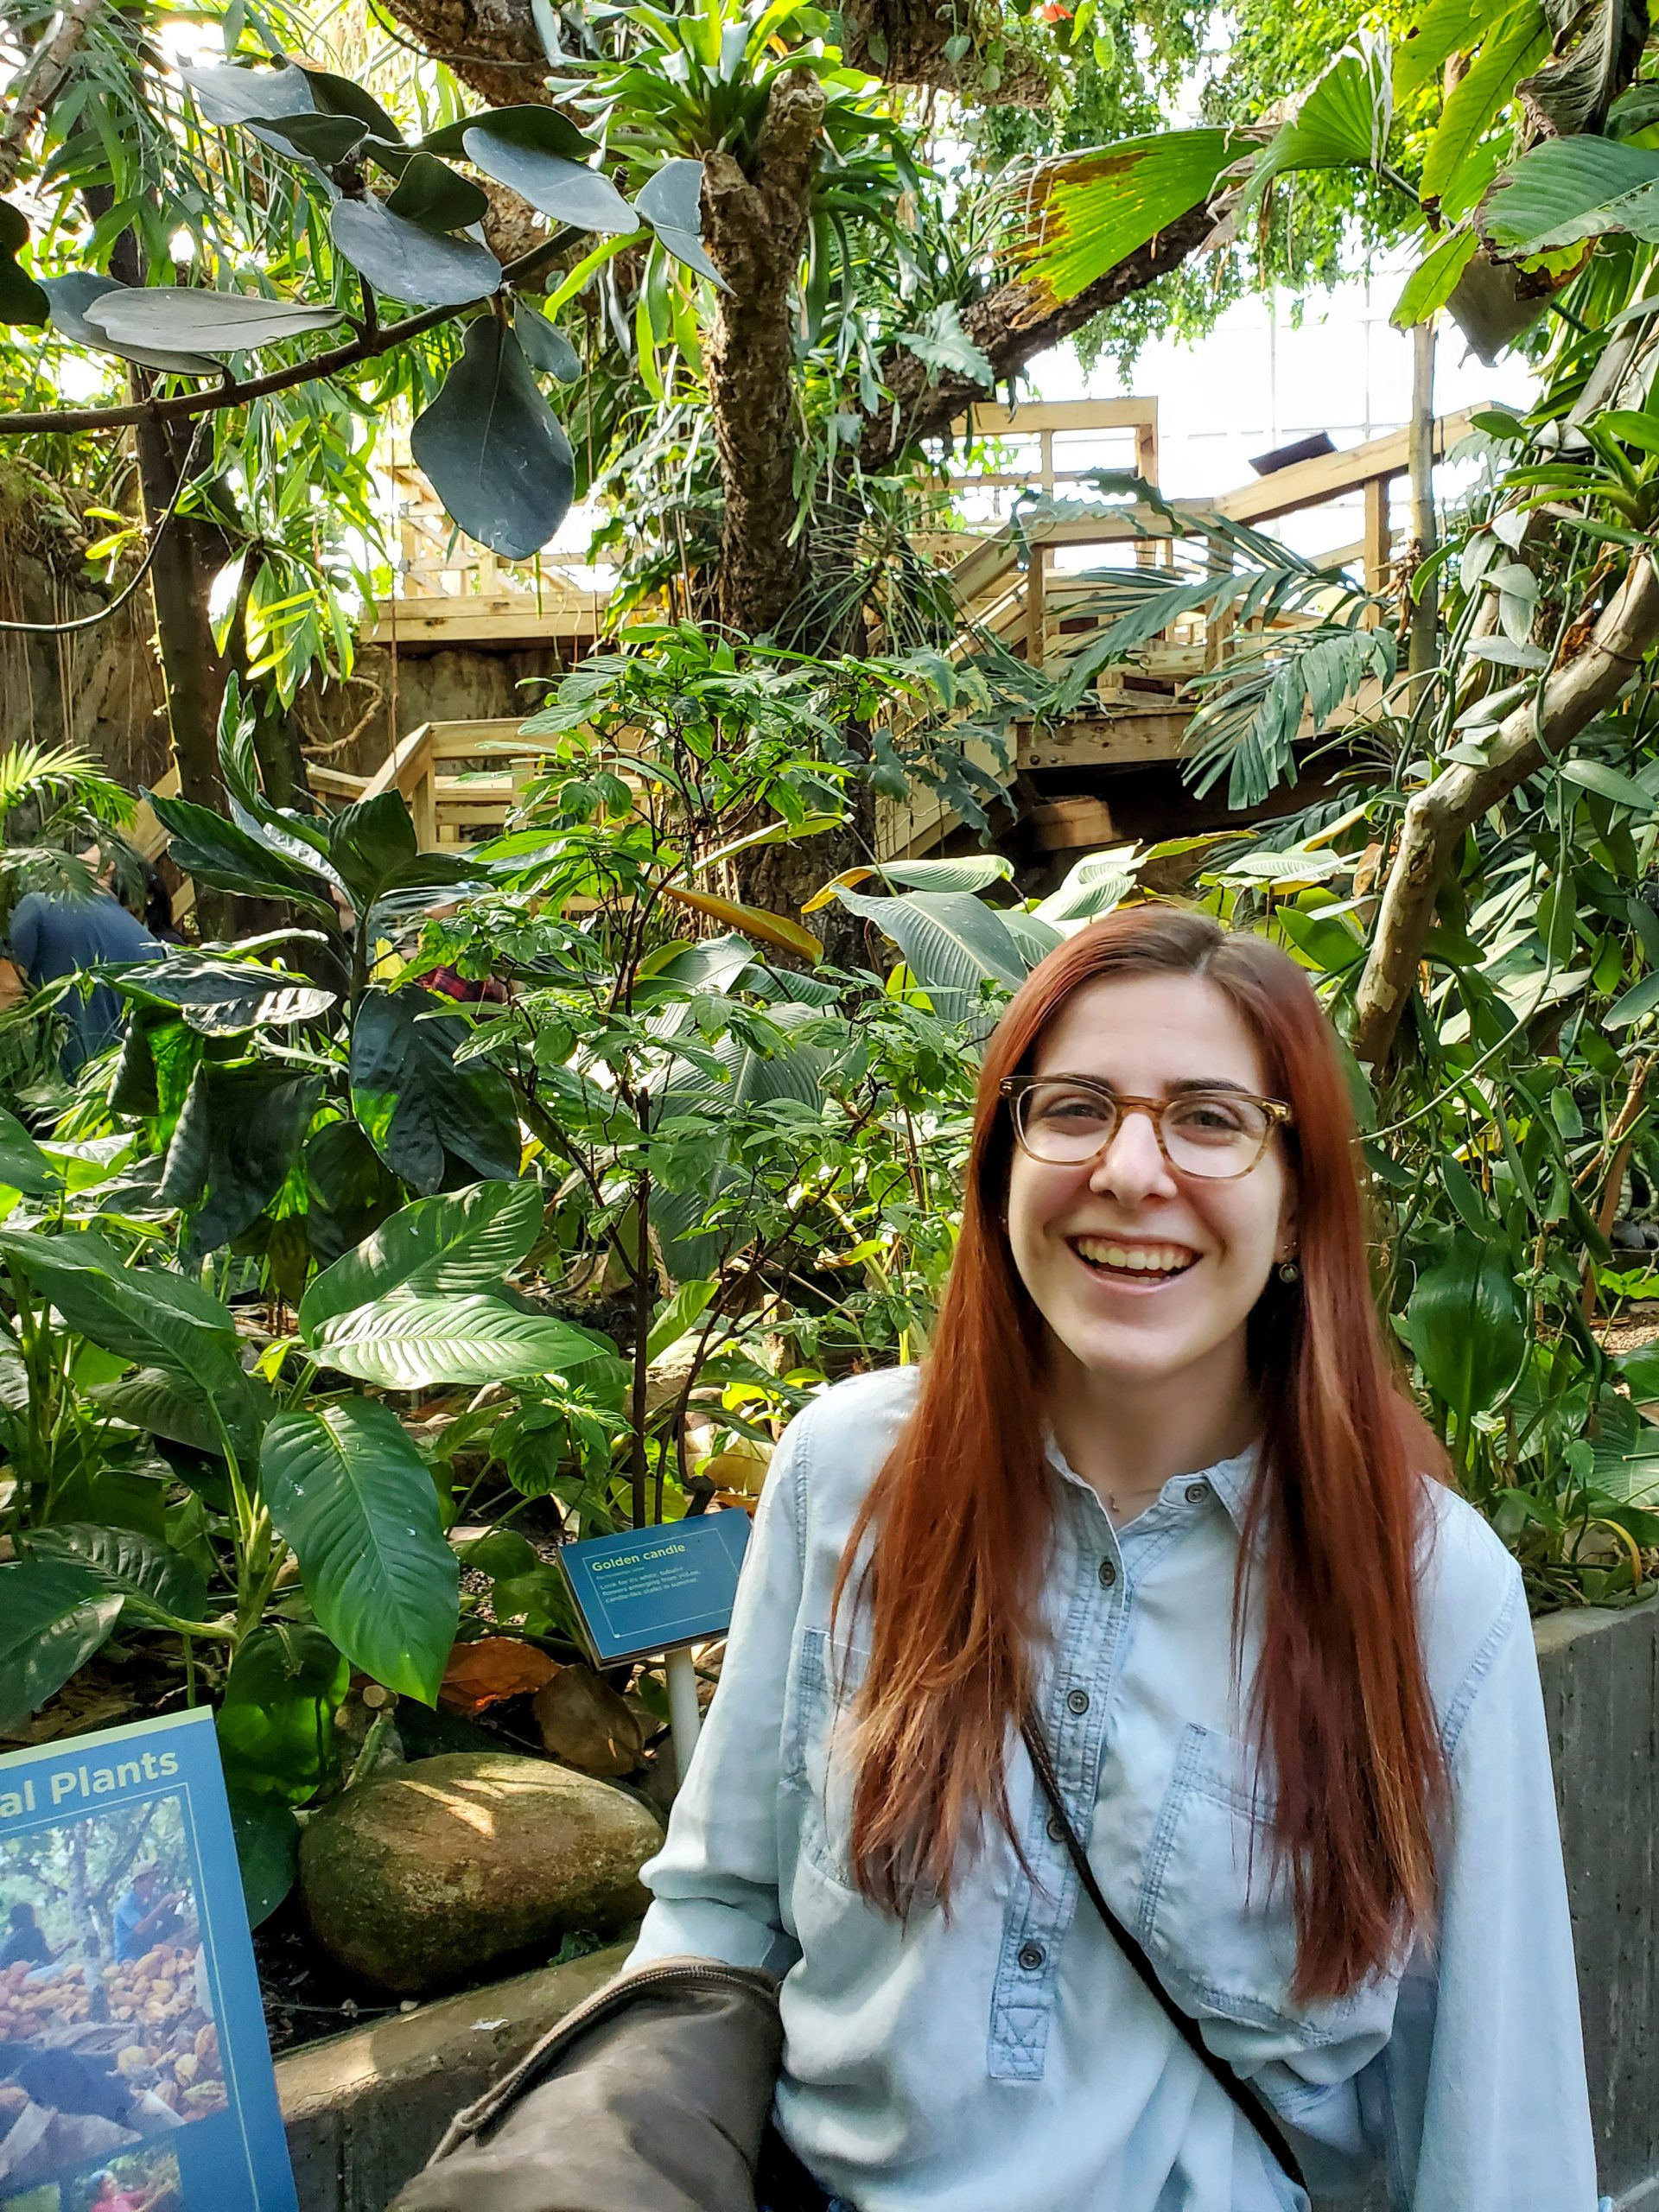 Picture of me with a LOT of plants behind me